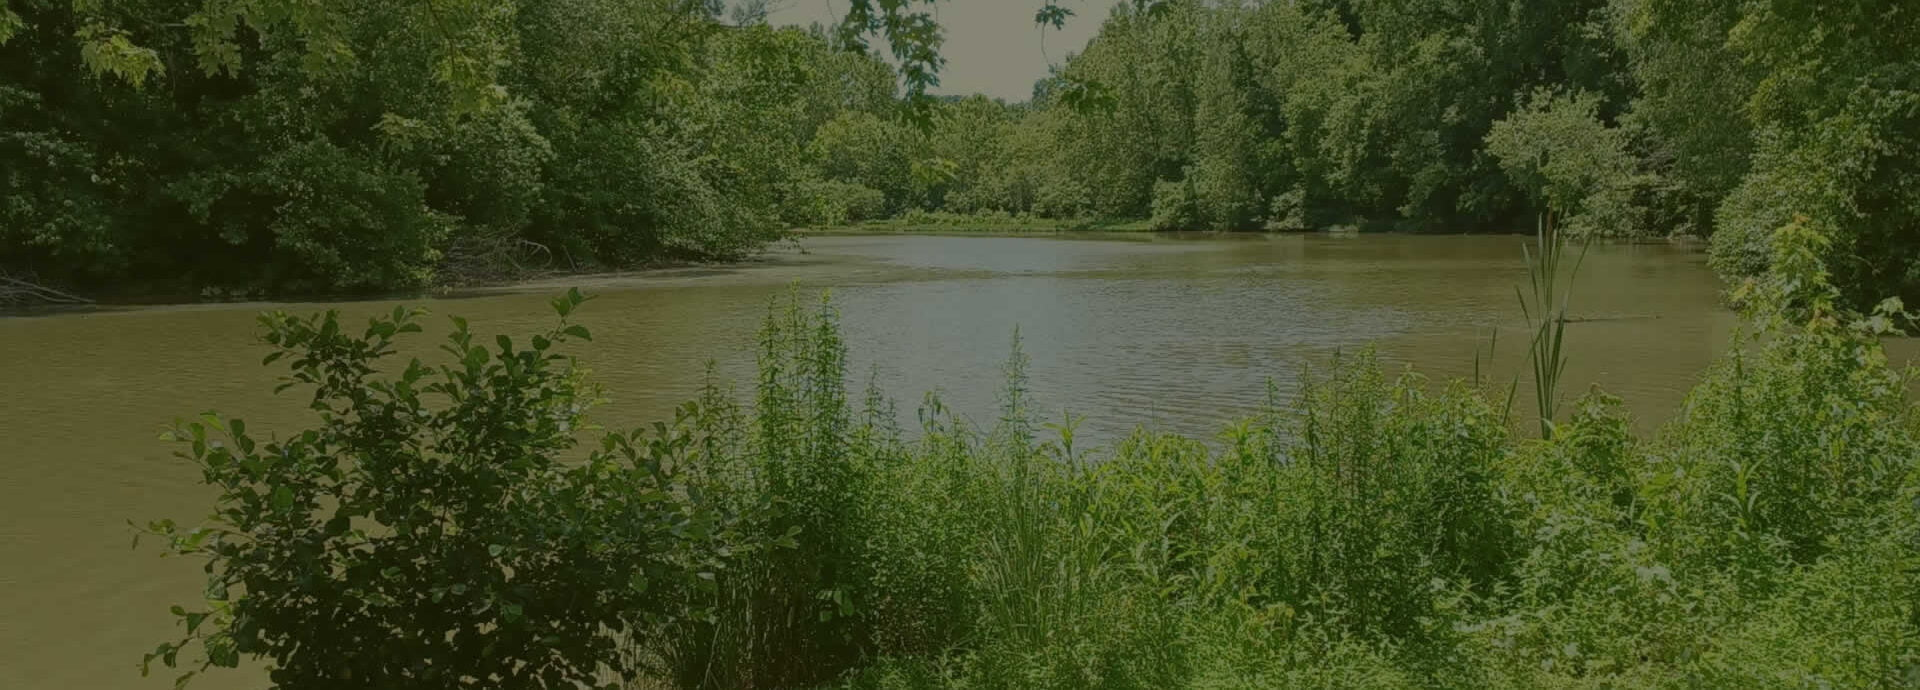 RV camping-Little Bear Island Campground in Greenup, Kentucky